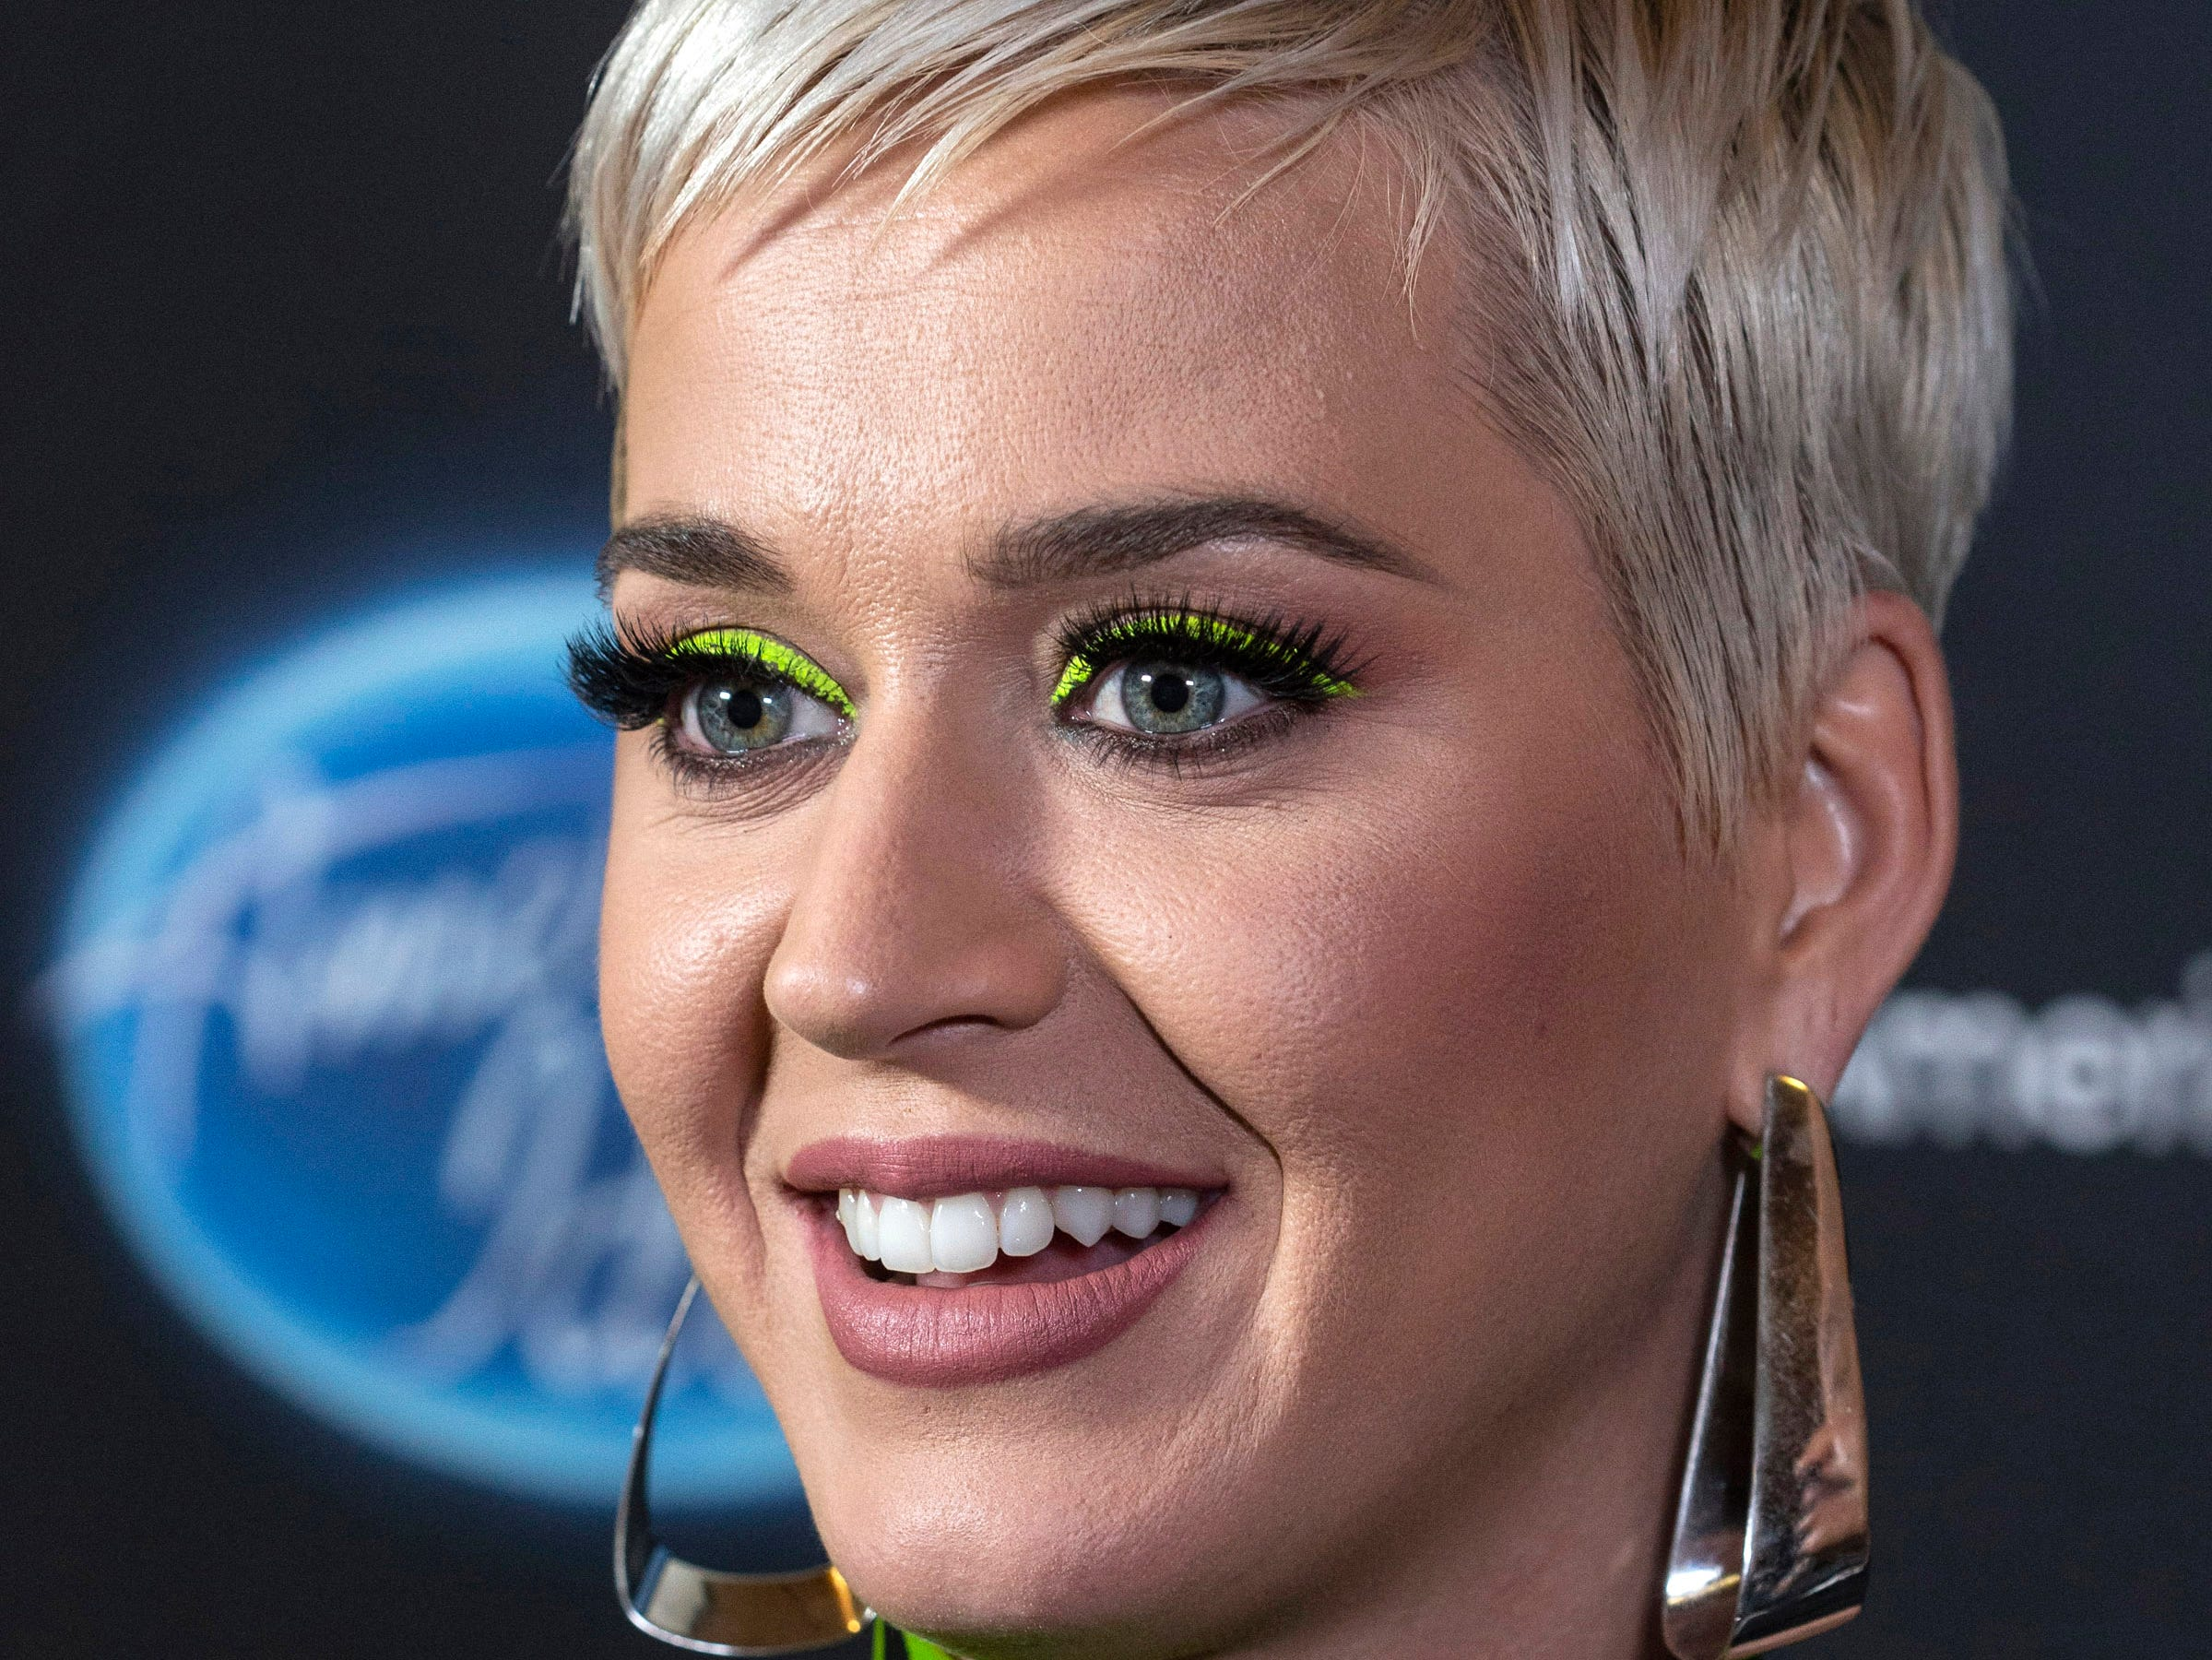 Pop star turned American Idol judge Katy Perry was in Louisville on Tuesday night for local auditions at the Ali Center. 10/23/18